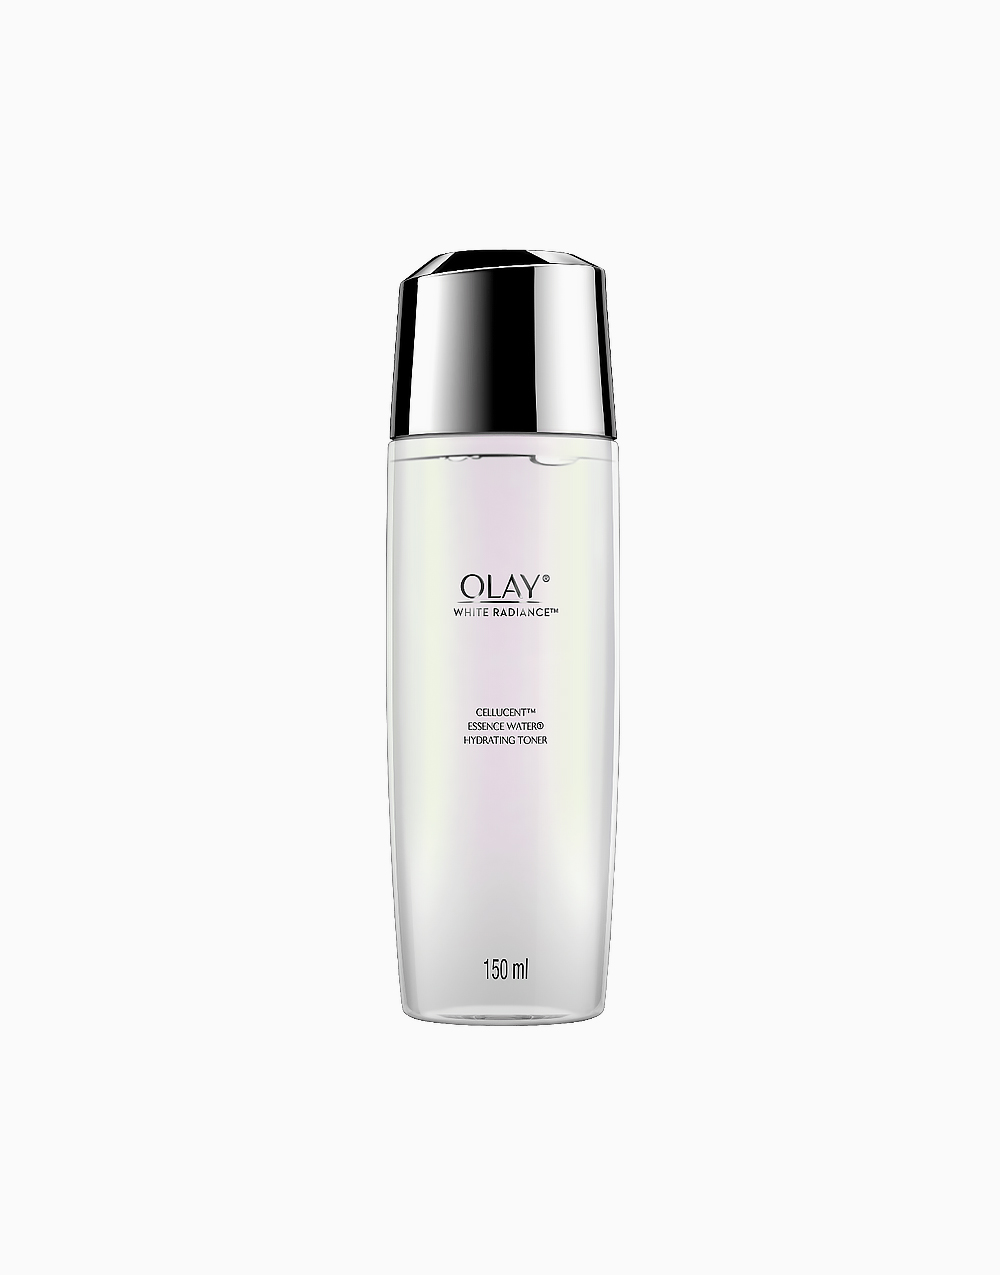 Olay White Radiance Cellucent Essence Water 150ml by Olay